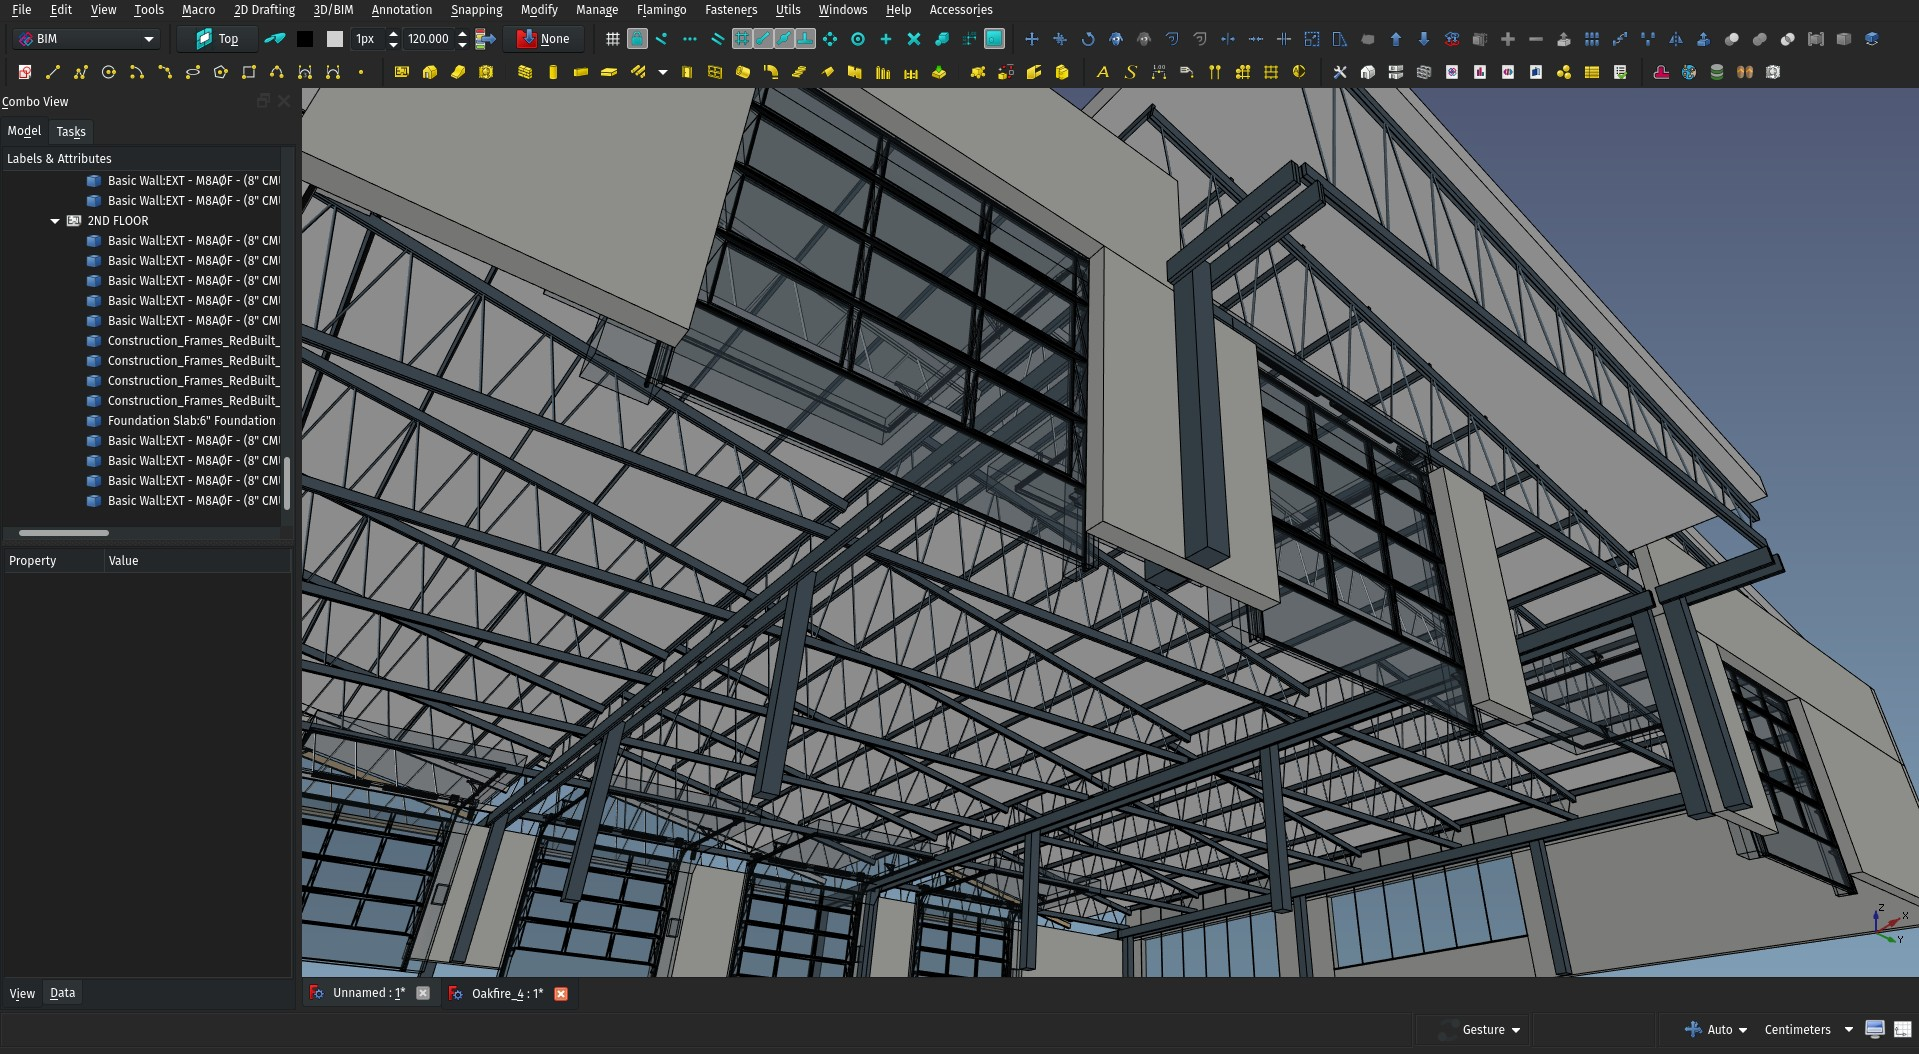 screenshot of the FreeCAD 3D view showing a building being modelled